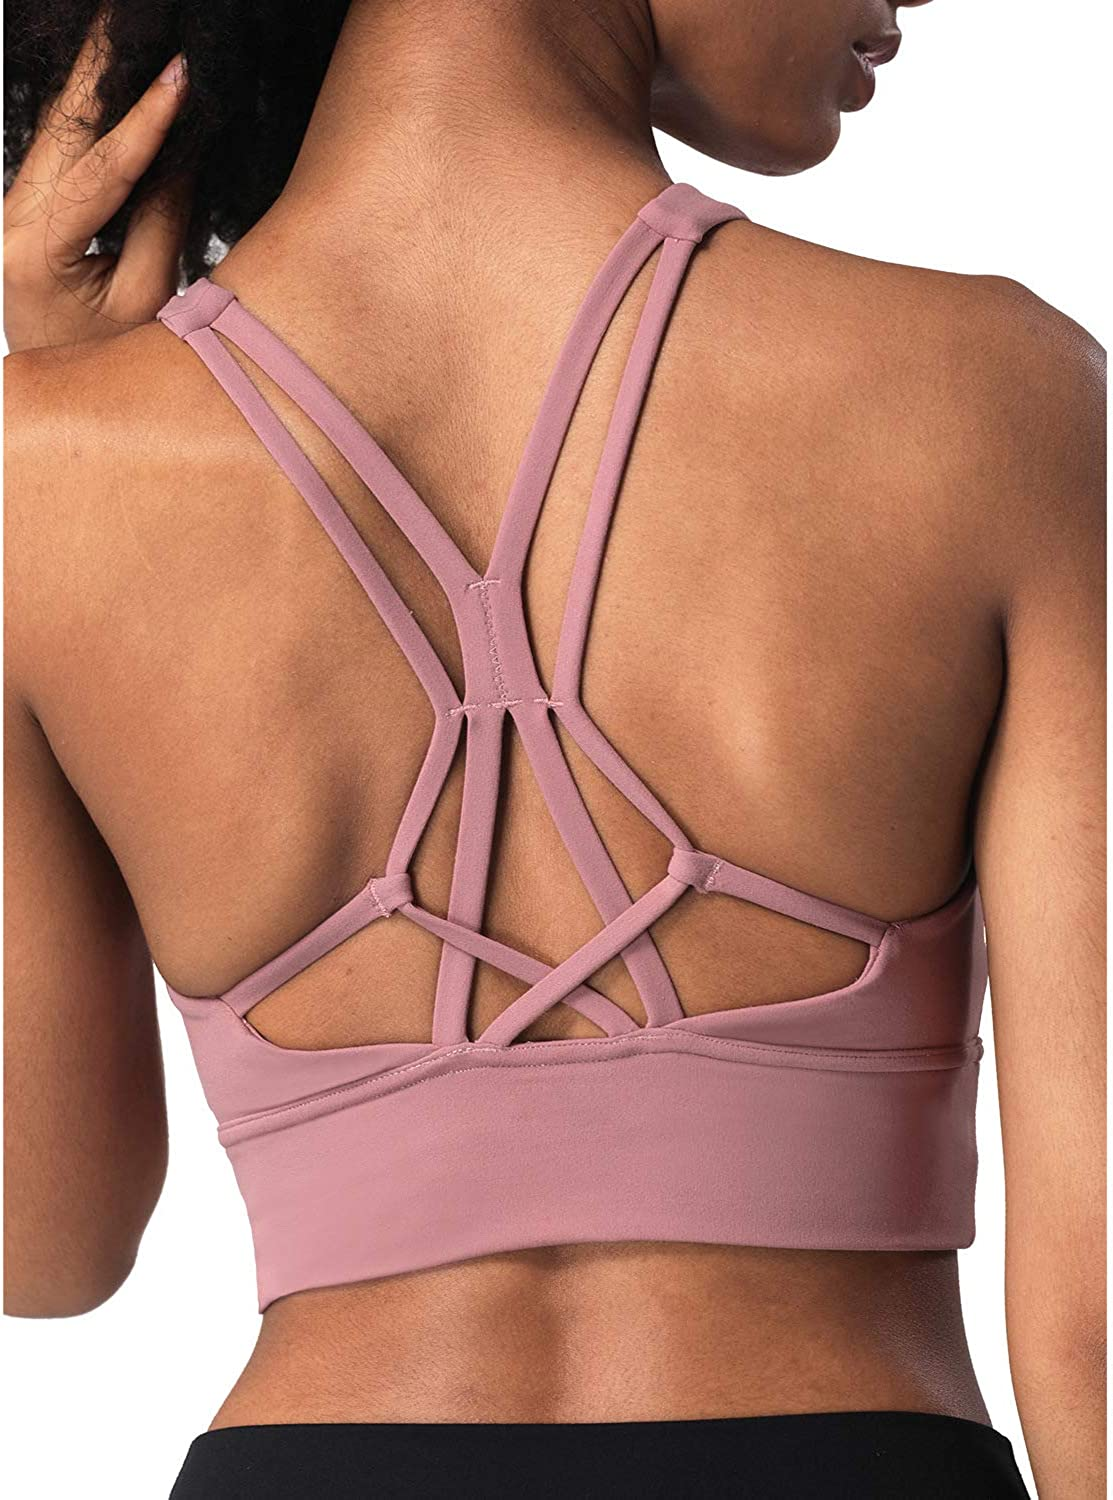 Lykoxa Sports Bras for Women Cross Back Strappy Padded Bras for Yoga Activewear with Removable Cups